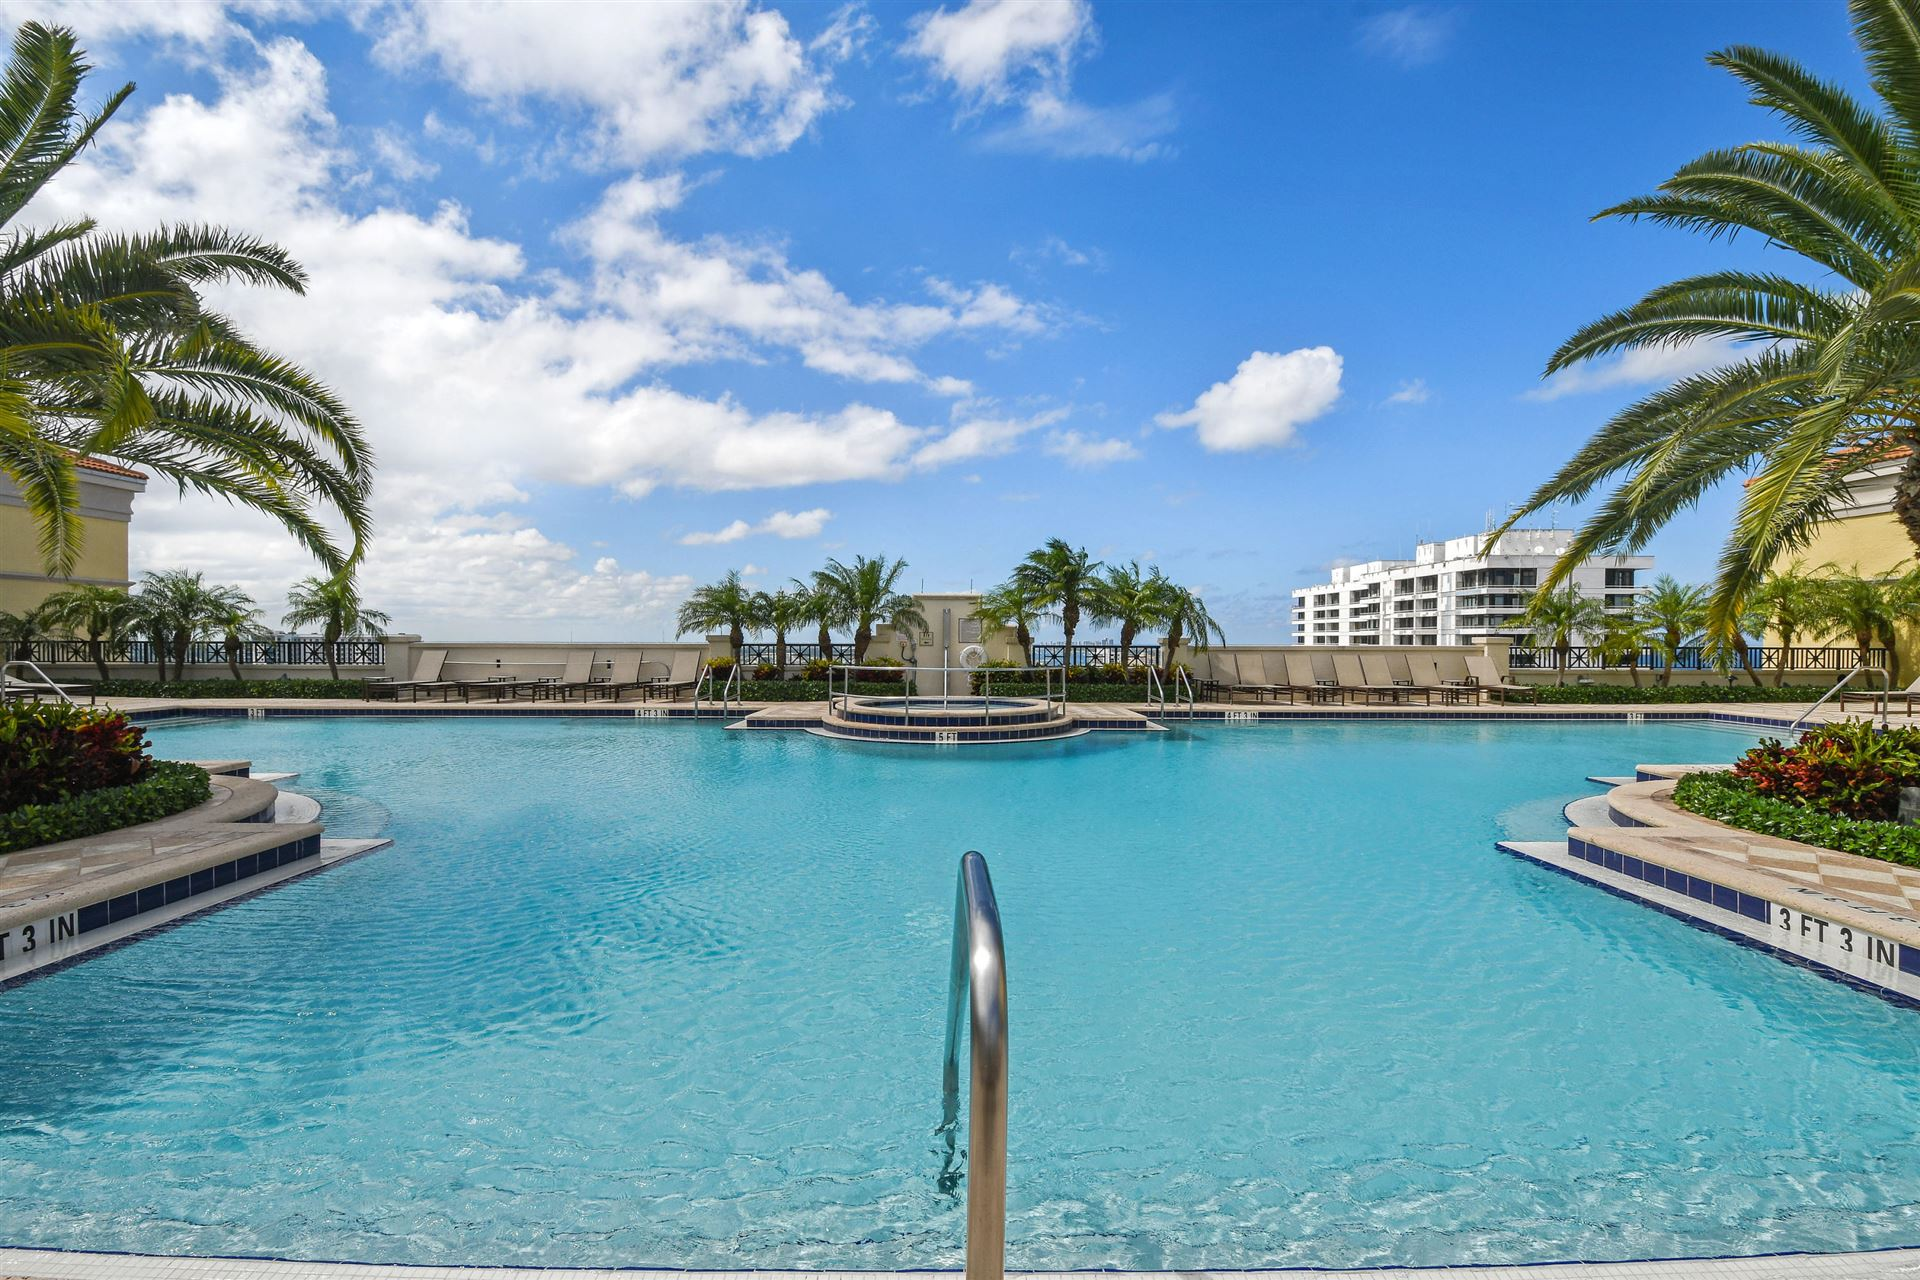 701 S Olive Avenue #1807, West Palm Beach, FL 33401 - #: RX-10670453